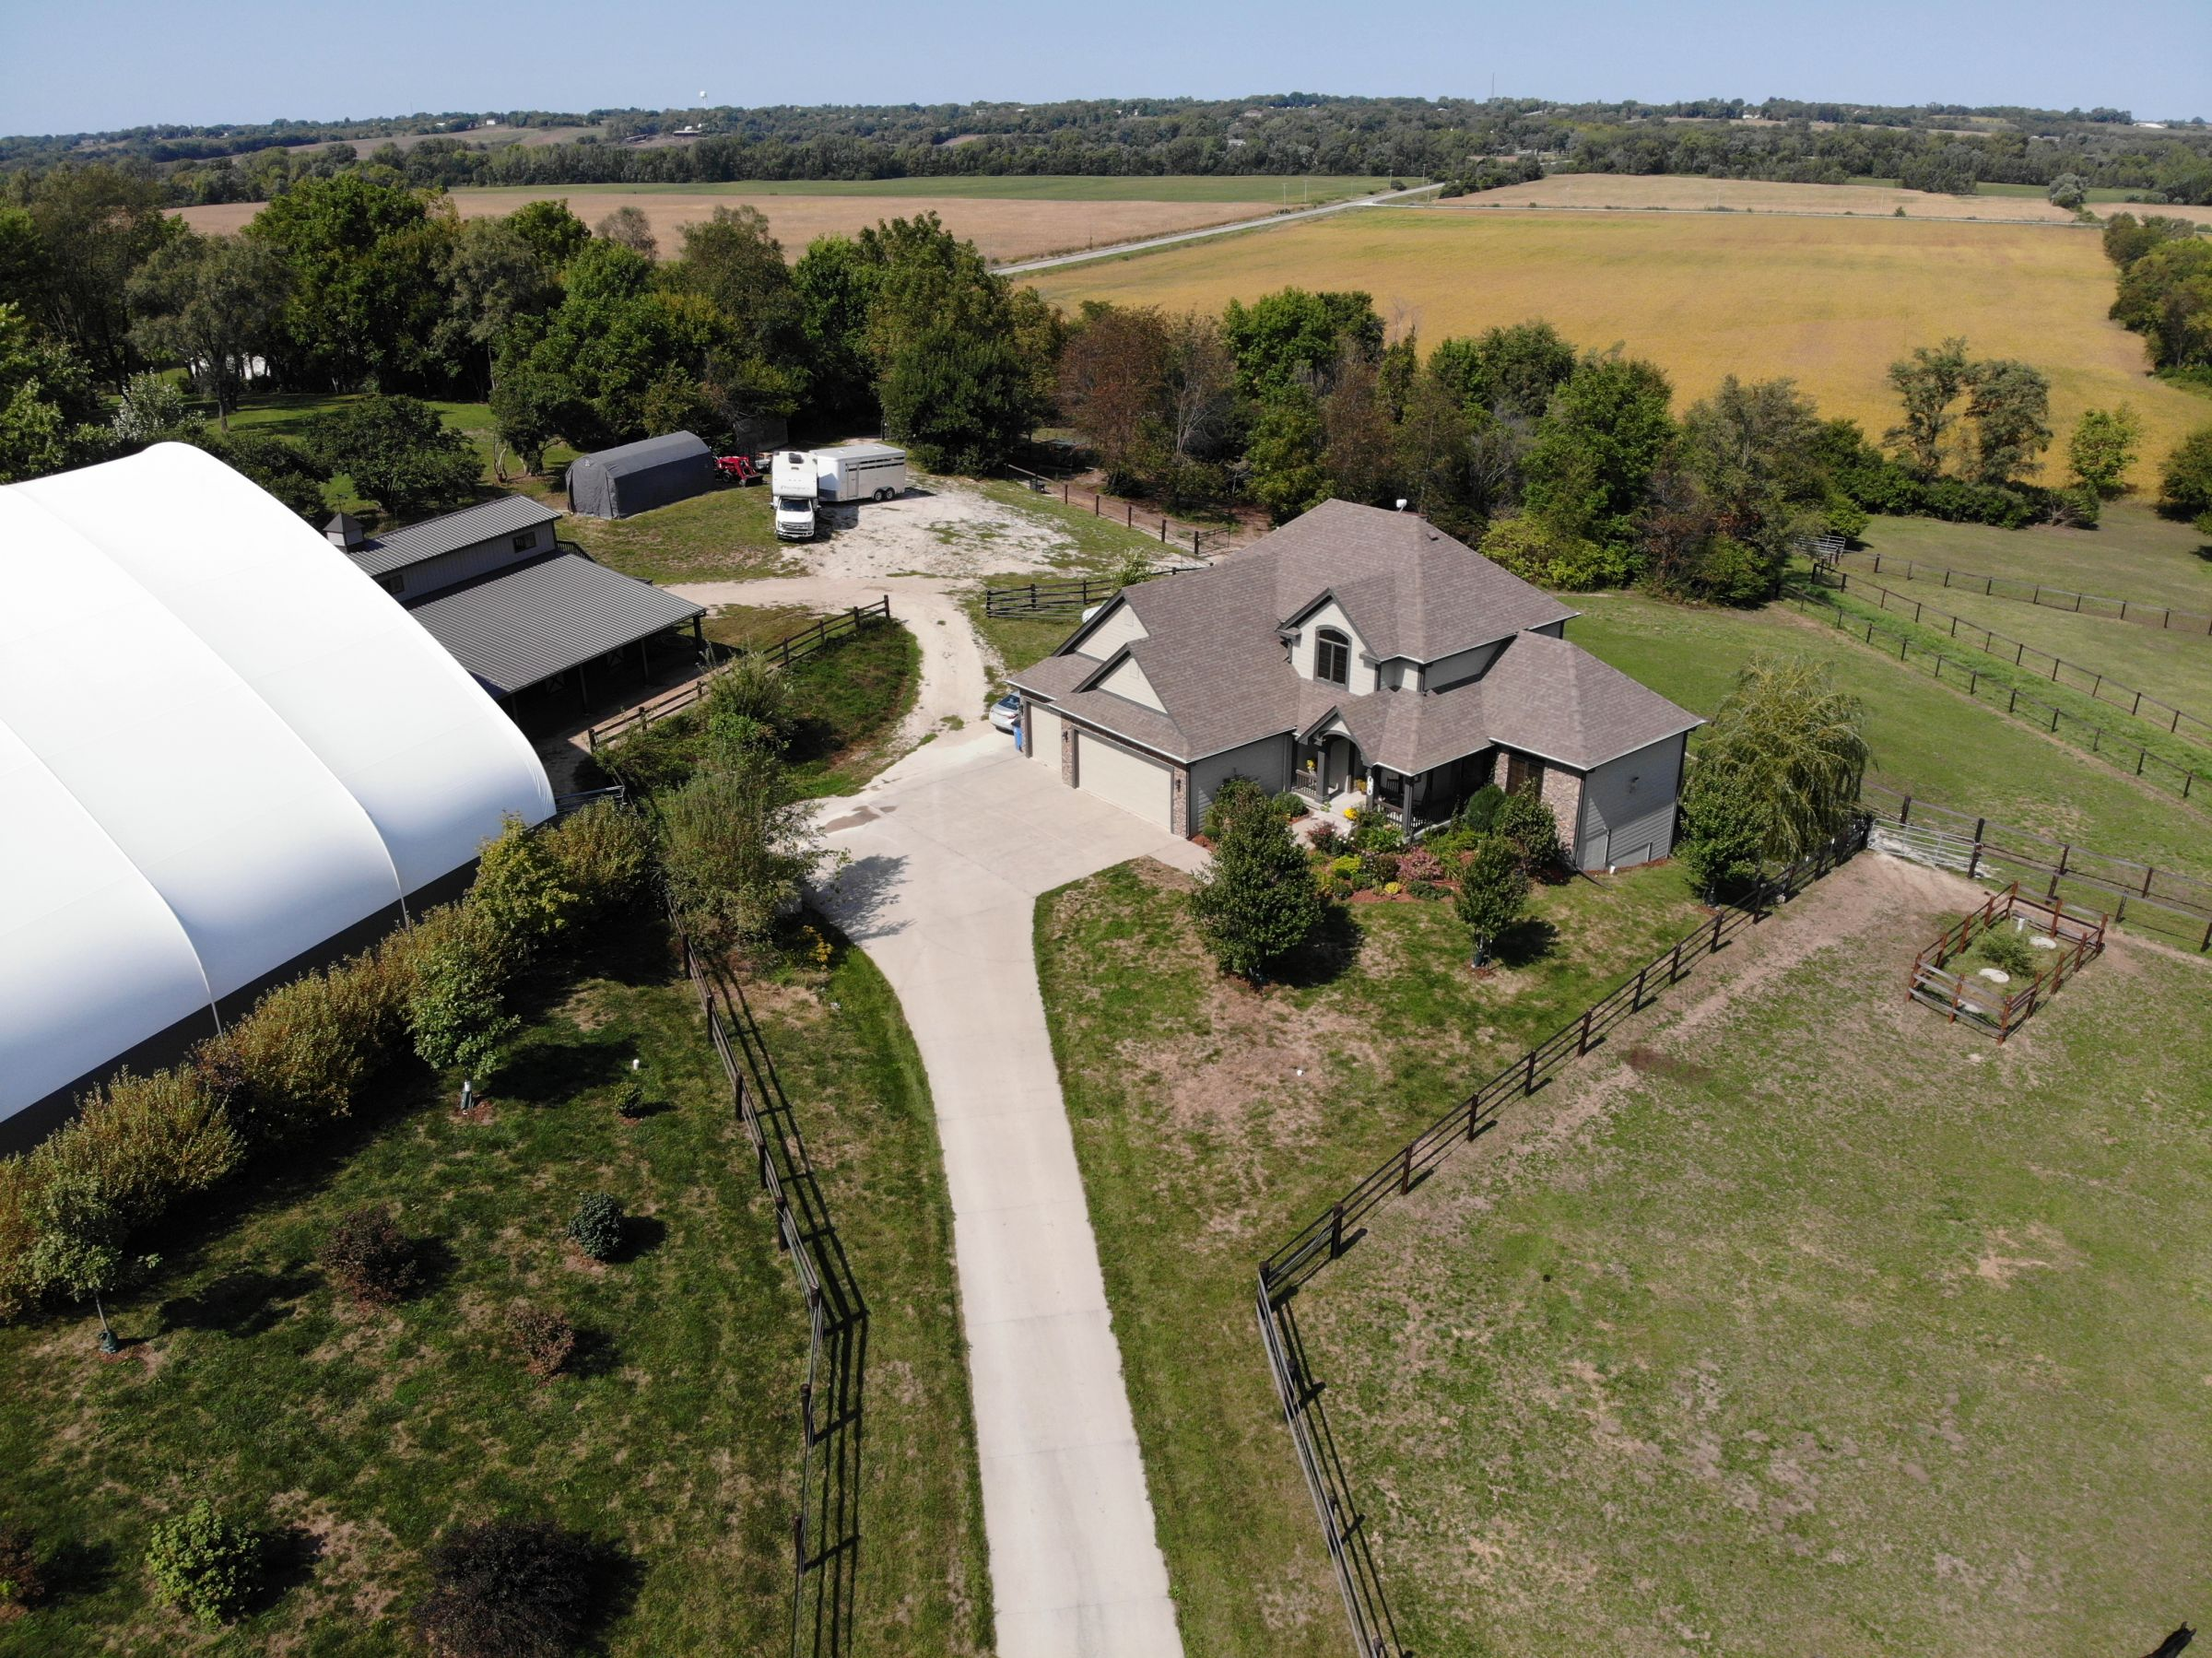 residential-warren-county-iowa-8-acres-listing-number-15130-3-2020-09-16-204230.JPG